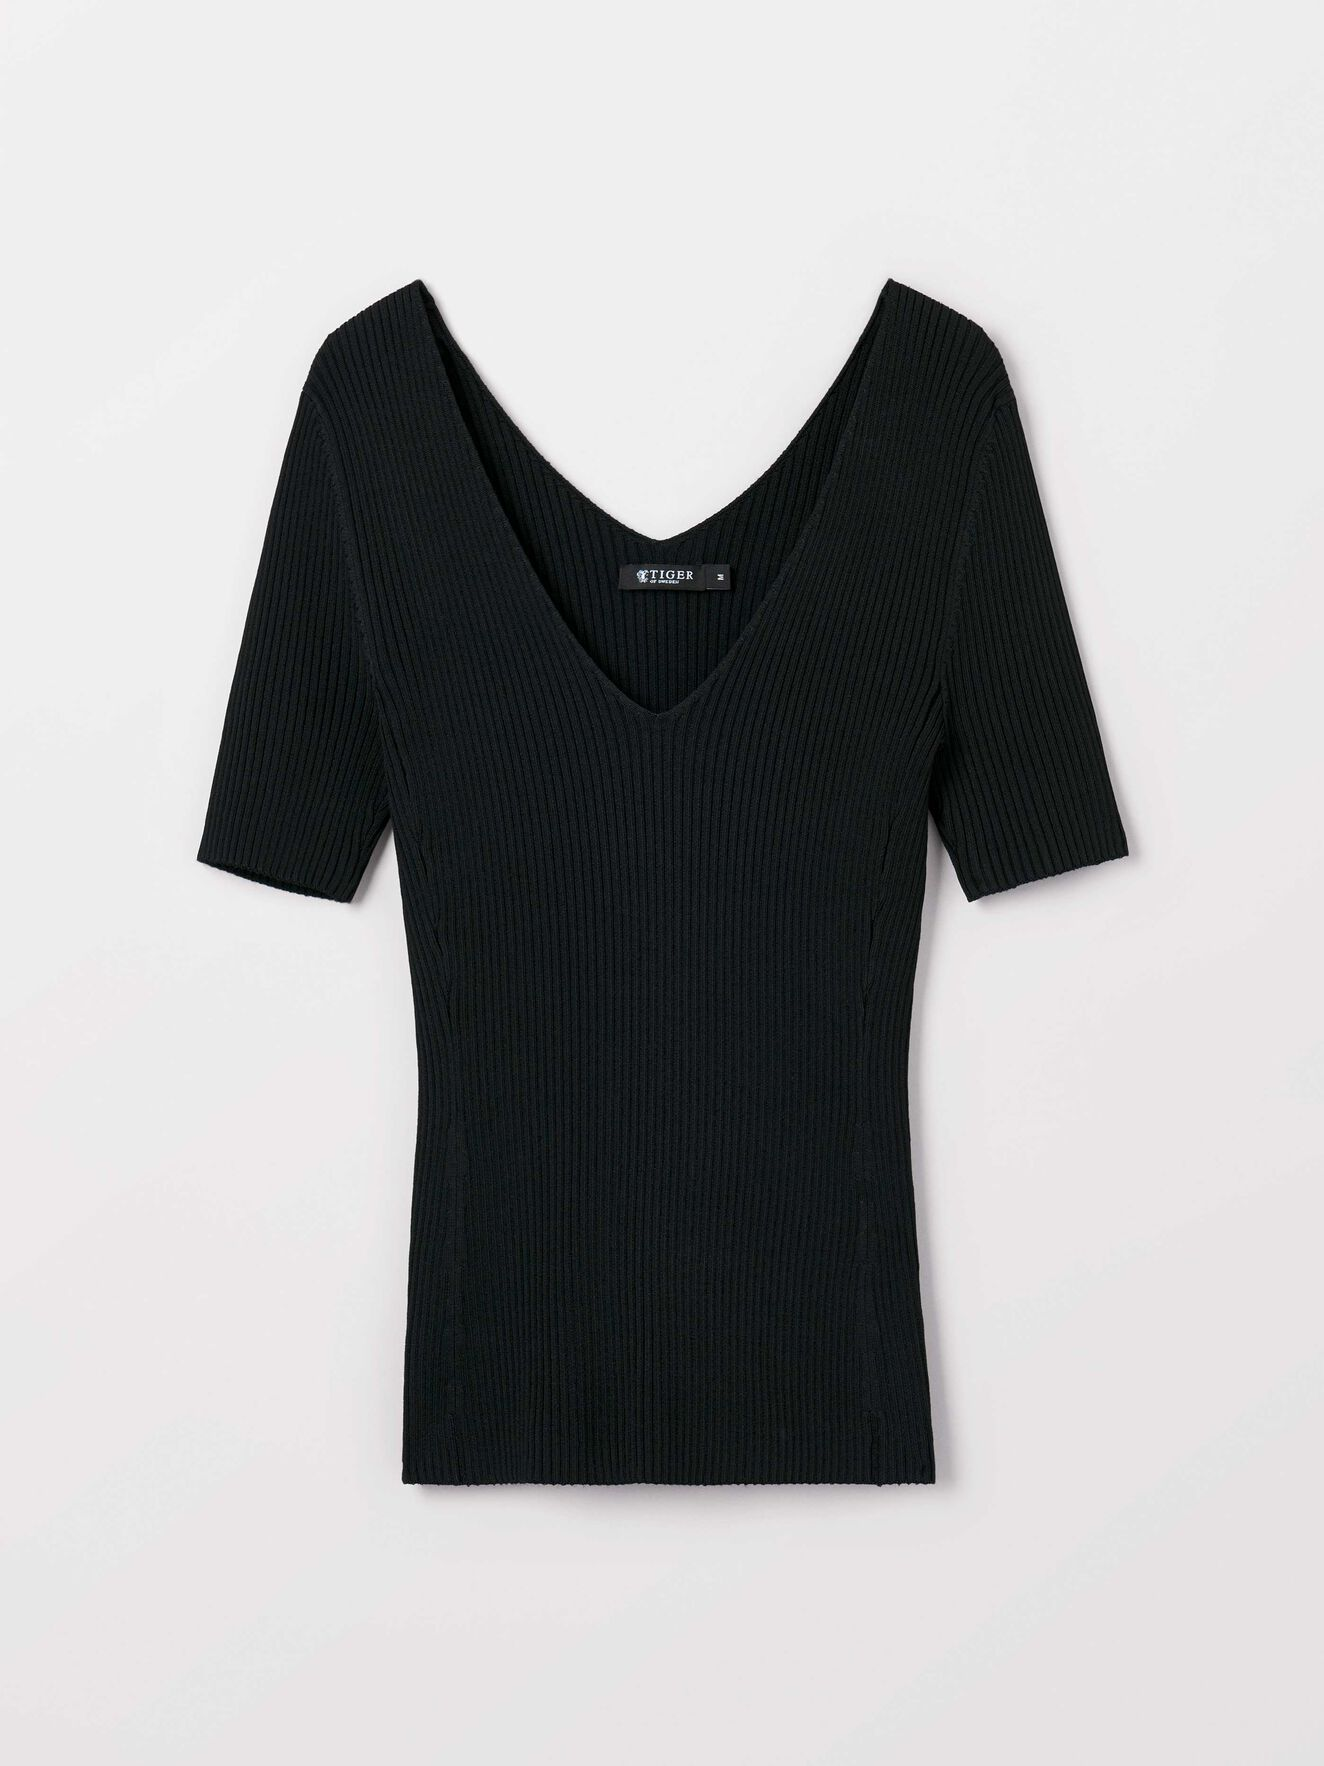 Jeane Top in Midnight Black from Tiger of Sweden